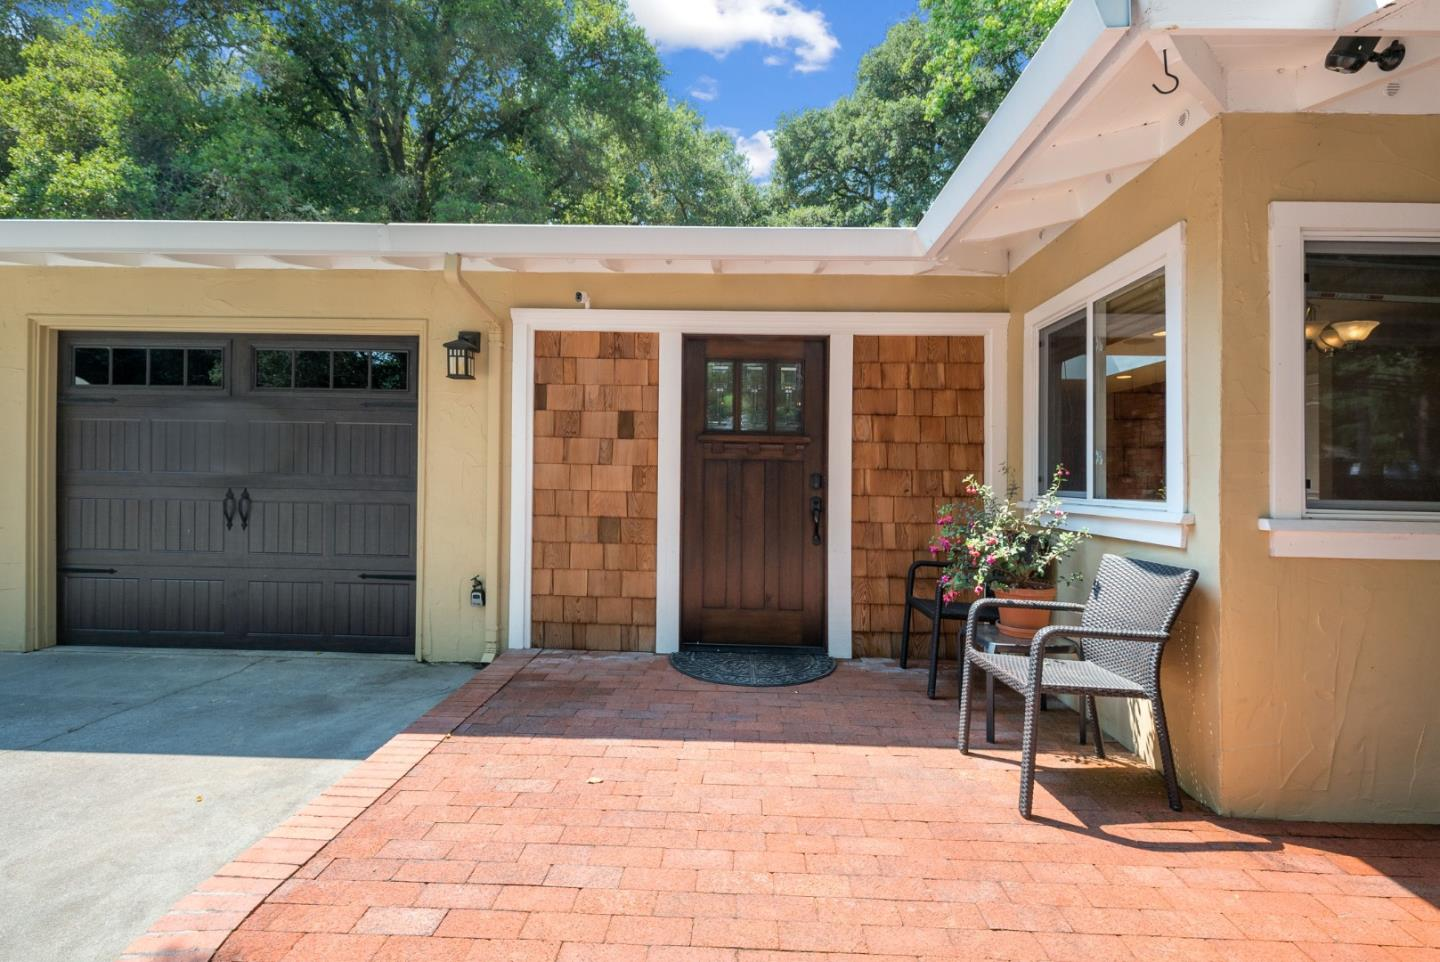 Stylish turn-key home located in one of Scotts Valley's most desired neighborhoods. The home is 3BR/2BA, 2300+ sqft, single level with wheel chair friendly hallways, attached 2 car gar w/ a huge fenced backyard. Kitchen is bright & open w/ ample counter & cabinet space, cooking island, breakfast nook, and open to area that could be a formal dining room or a family room. Oversized living room accessible from the hallway and the kitchen, features a wood burning fireplace, stone accent wall, and French doors to the backyard patio. Built-in speaker system throughout the house & yard. Flat & usable .38 ac lot w/ sunny space to garden, native oak trees provide shade, grassy areas to play, and plenty of parking for all your toys. Detached shed/bonus room w/ potential as an art studio, workshop. Great neighborhood in a top school district, within walking distance to Scotts Valley shopping and dining & Henry Cowell hiking trails. Easy freeway access for commuting or beach-going.